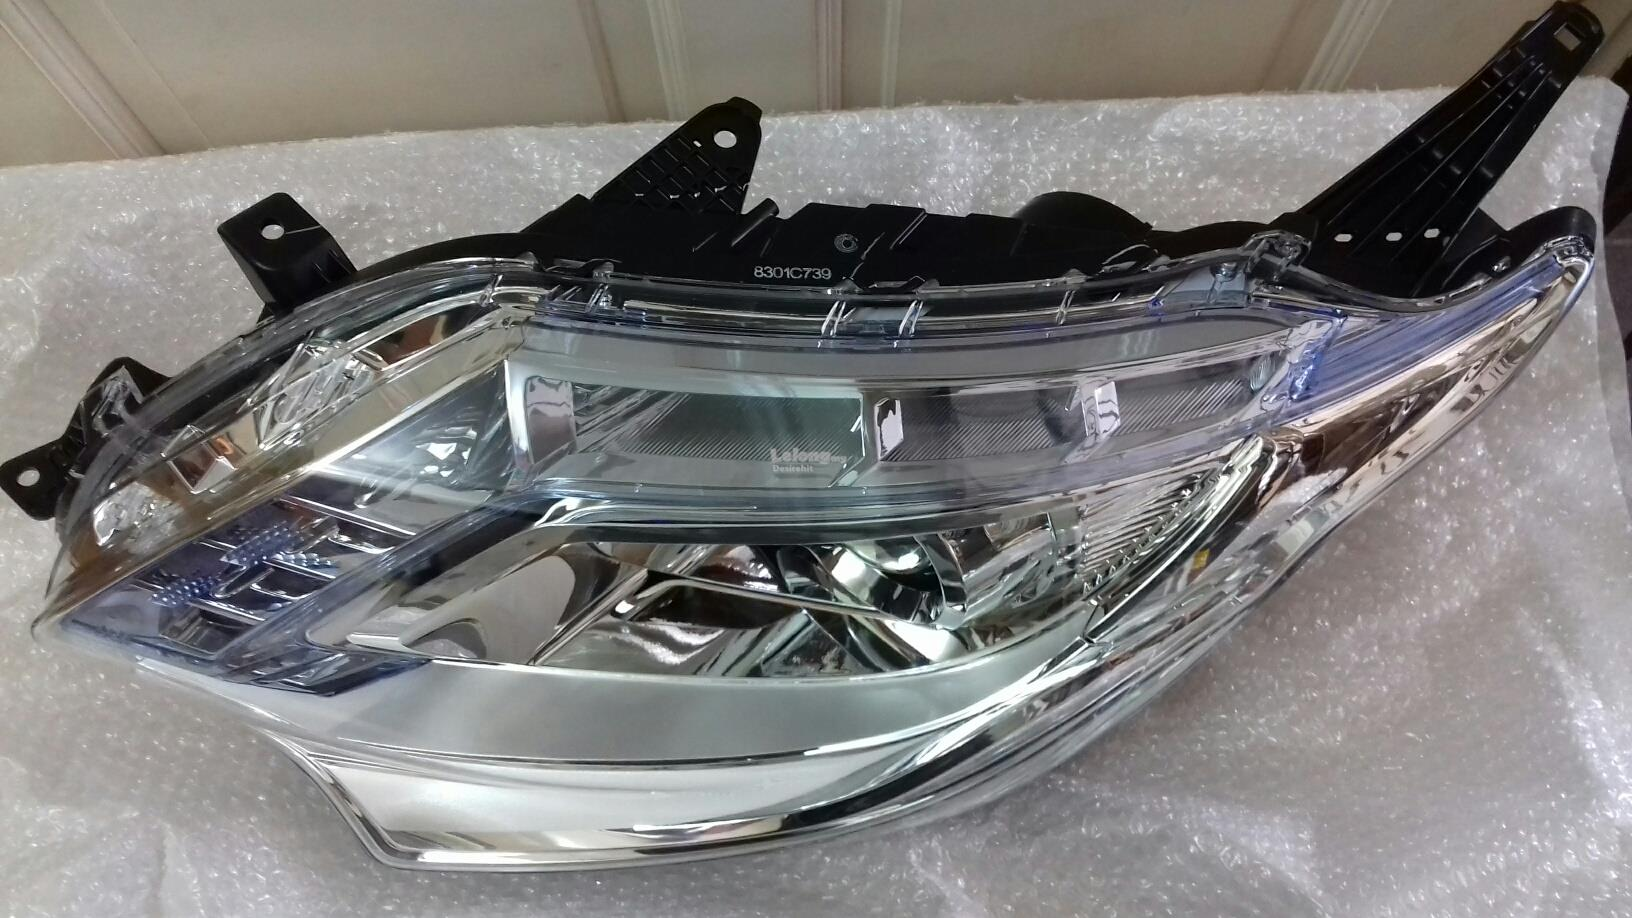 ORIGINAL MITSUBISHI TRITON HEADLAMP UNIT WITH LED DAY LIGHT RH/ LH